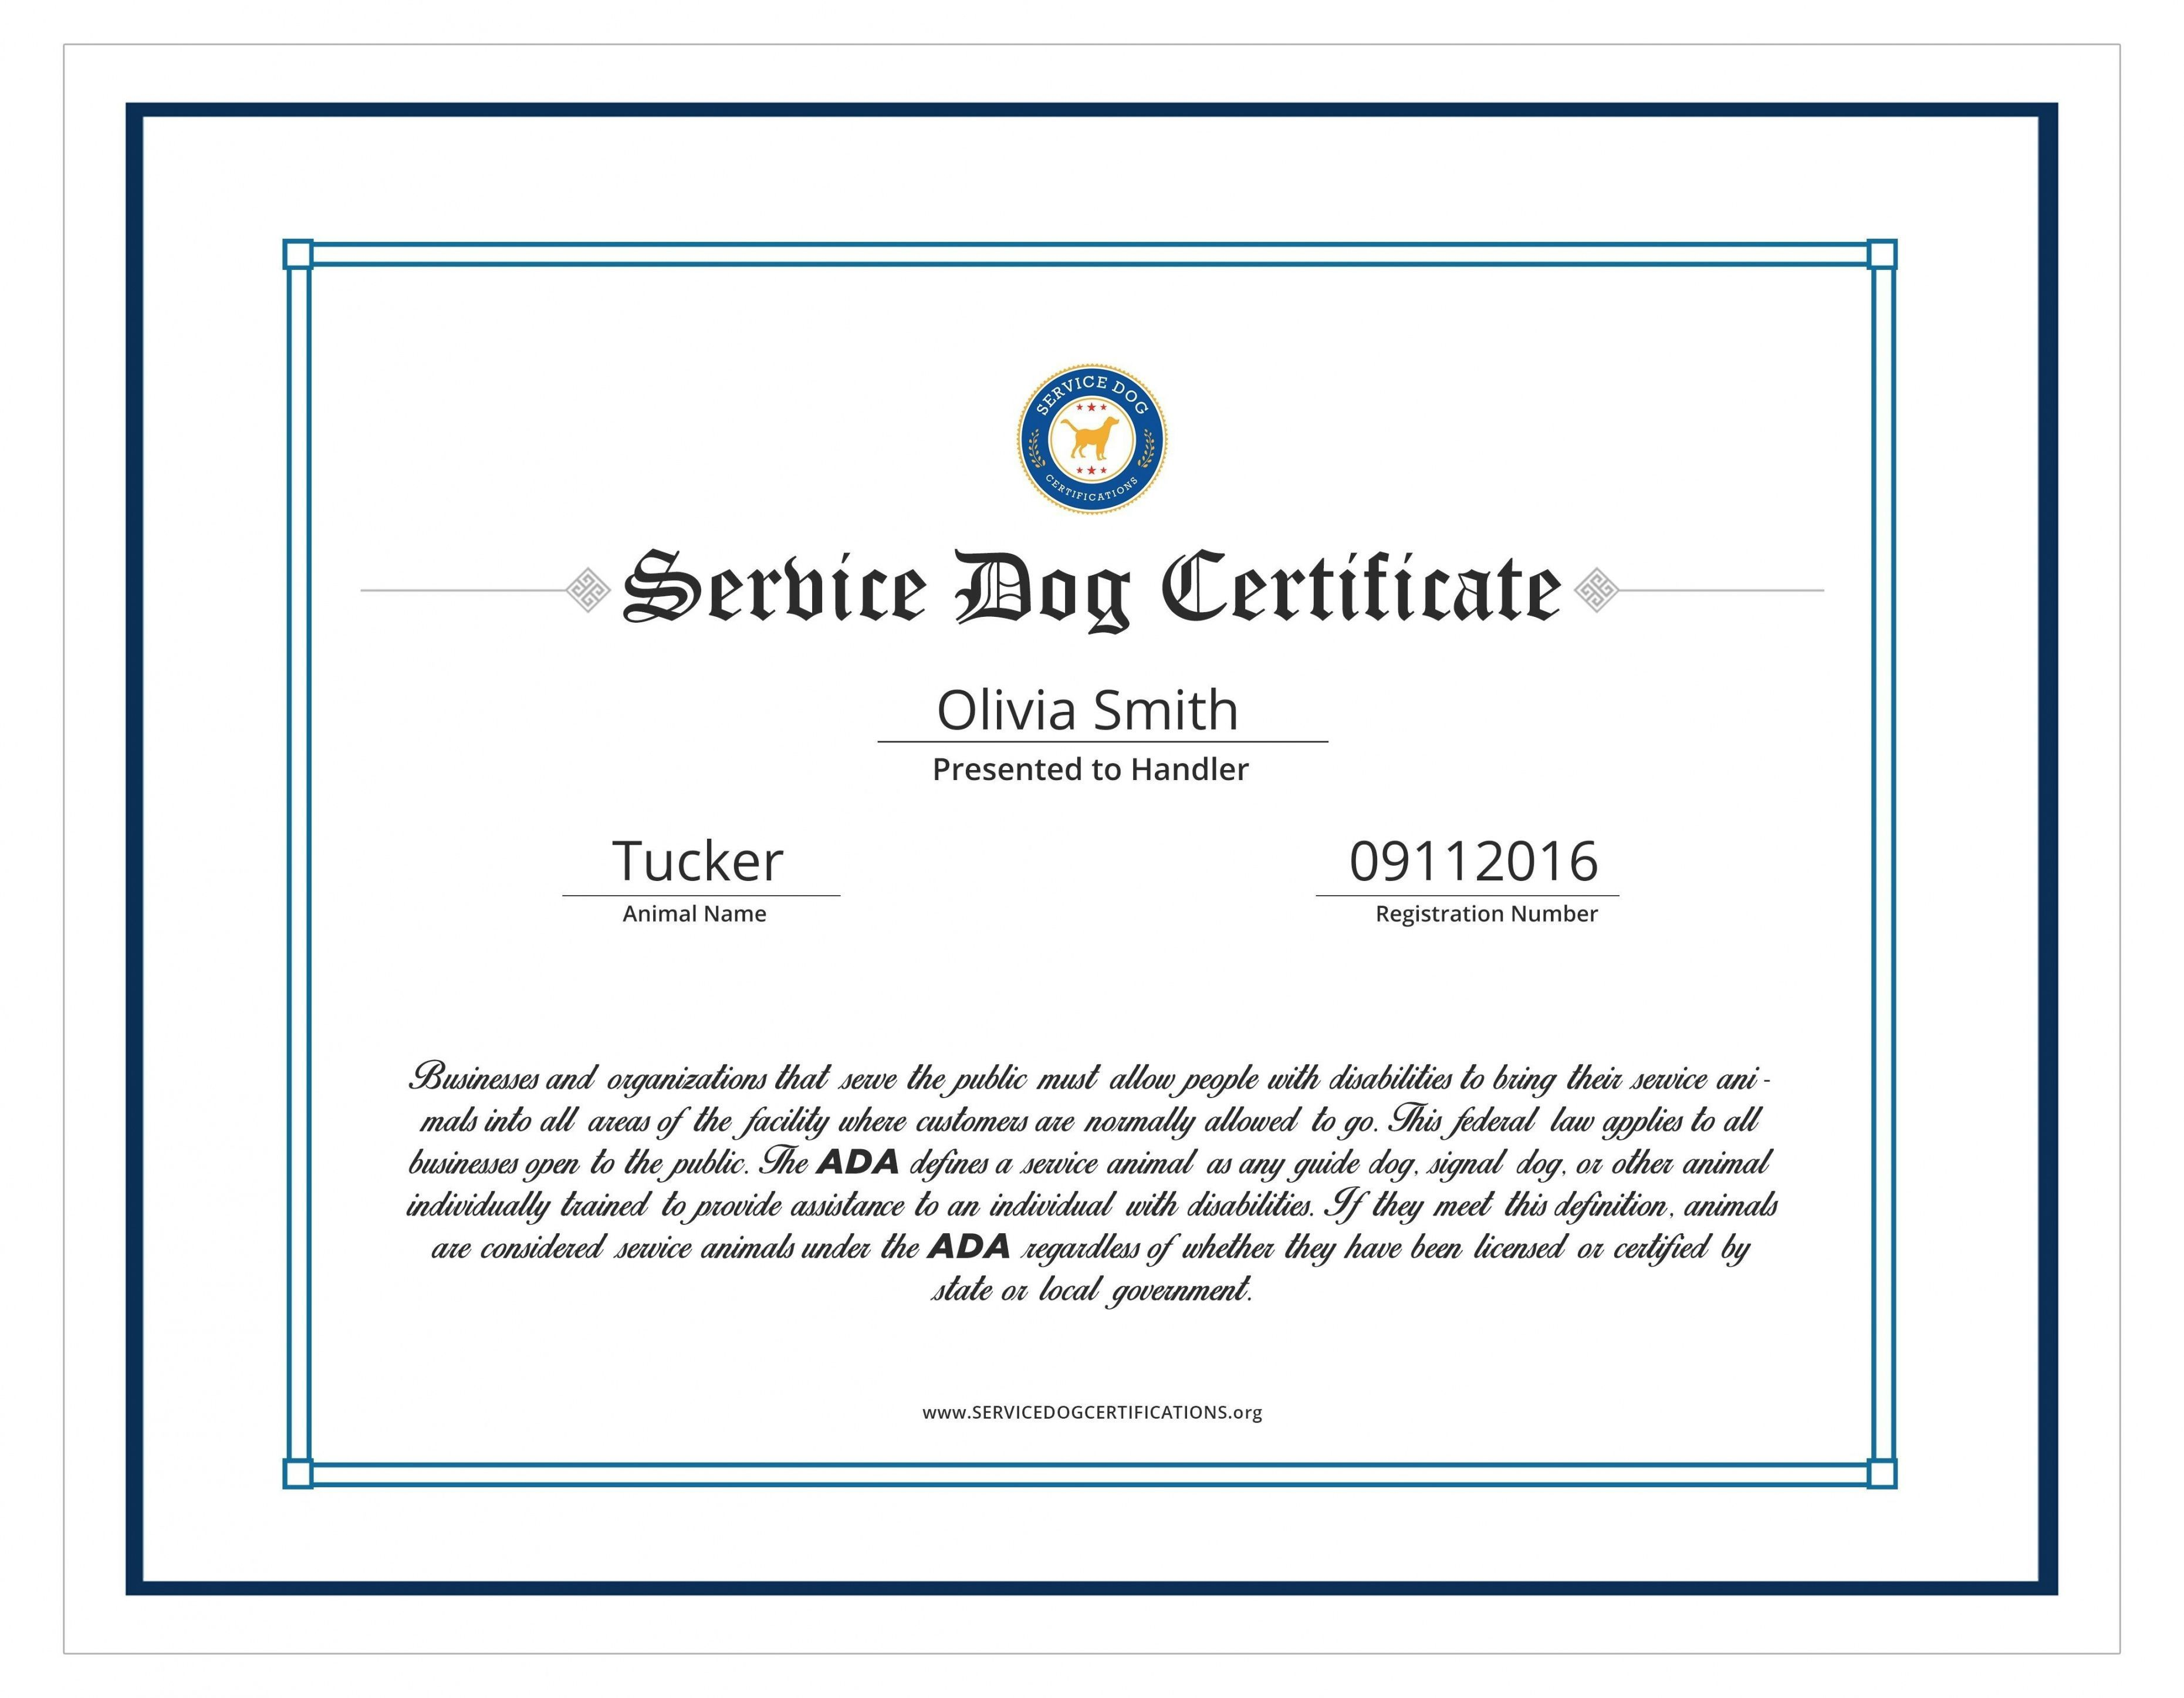 004 Amazing Service Dog Certificate Template Idea  Printable Id FreeFull